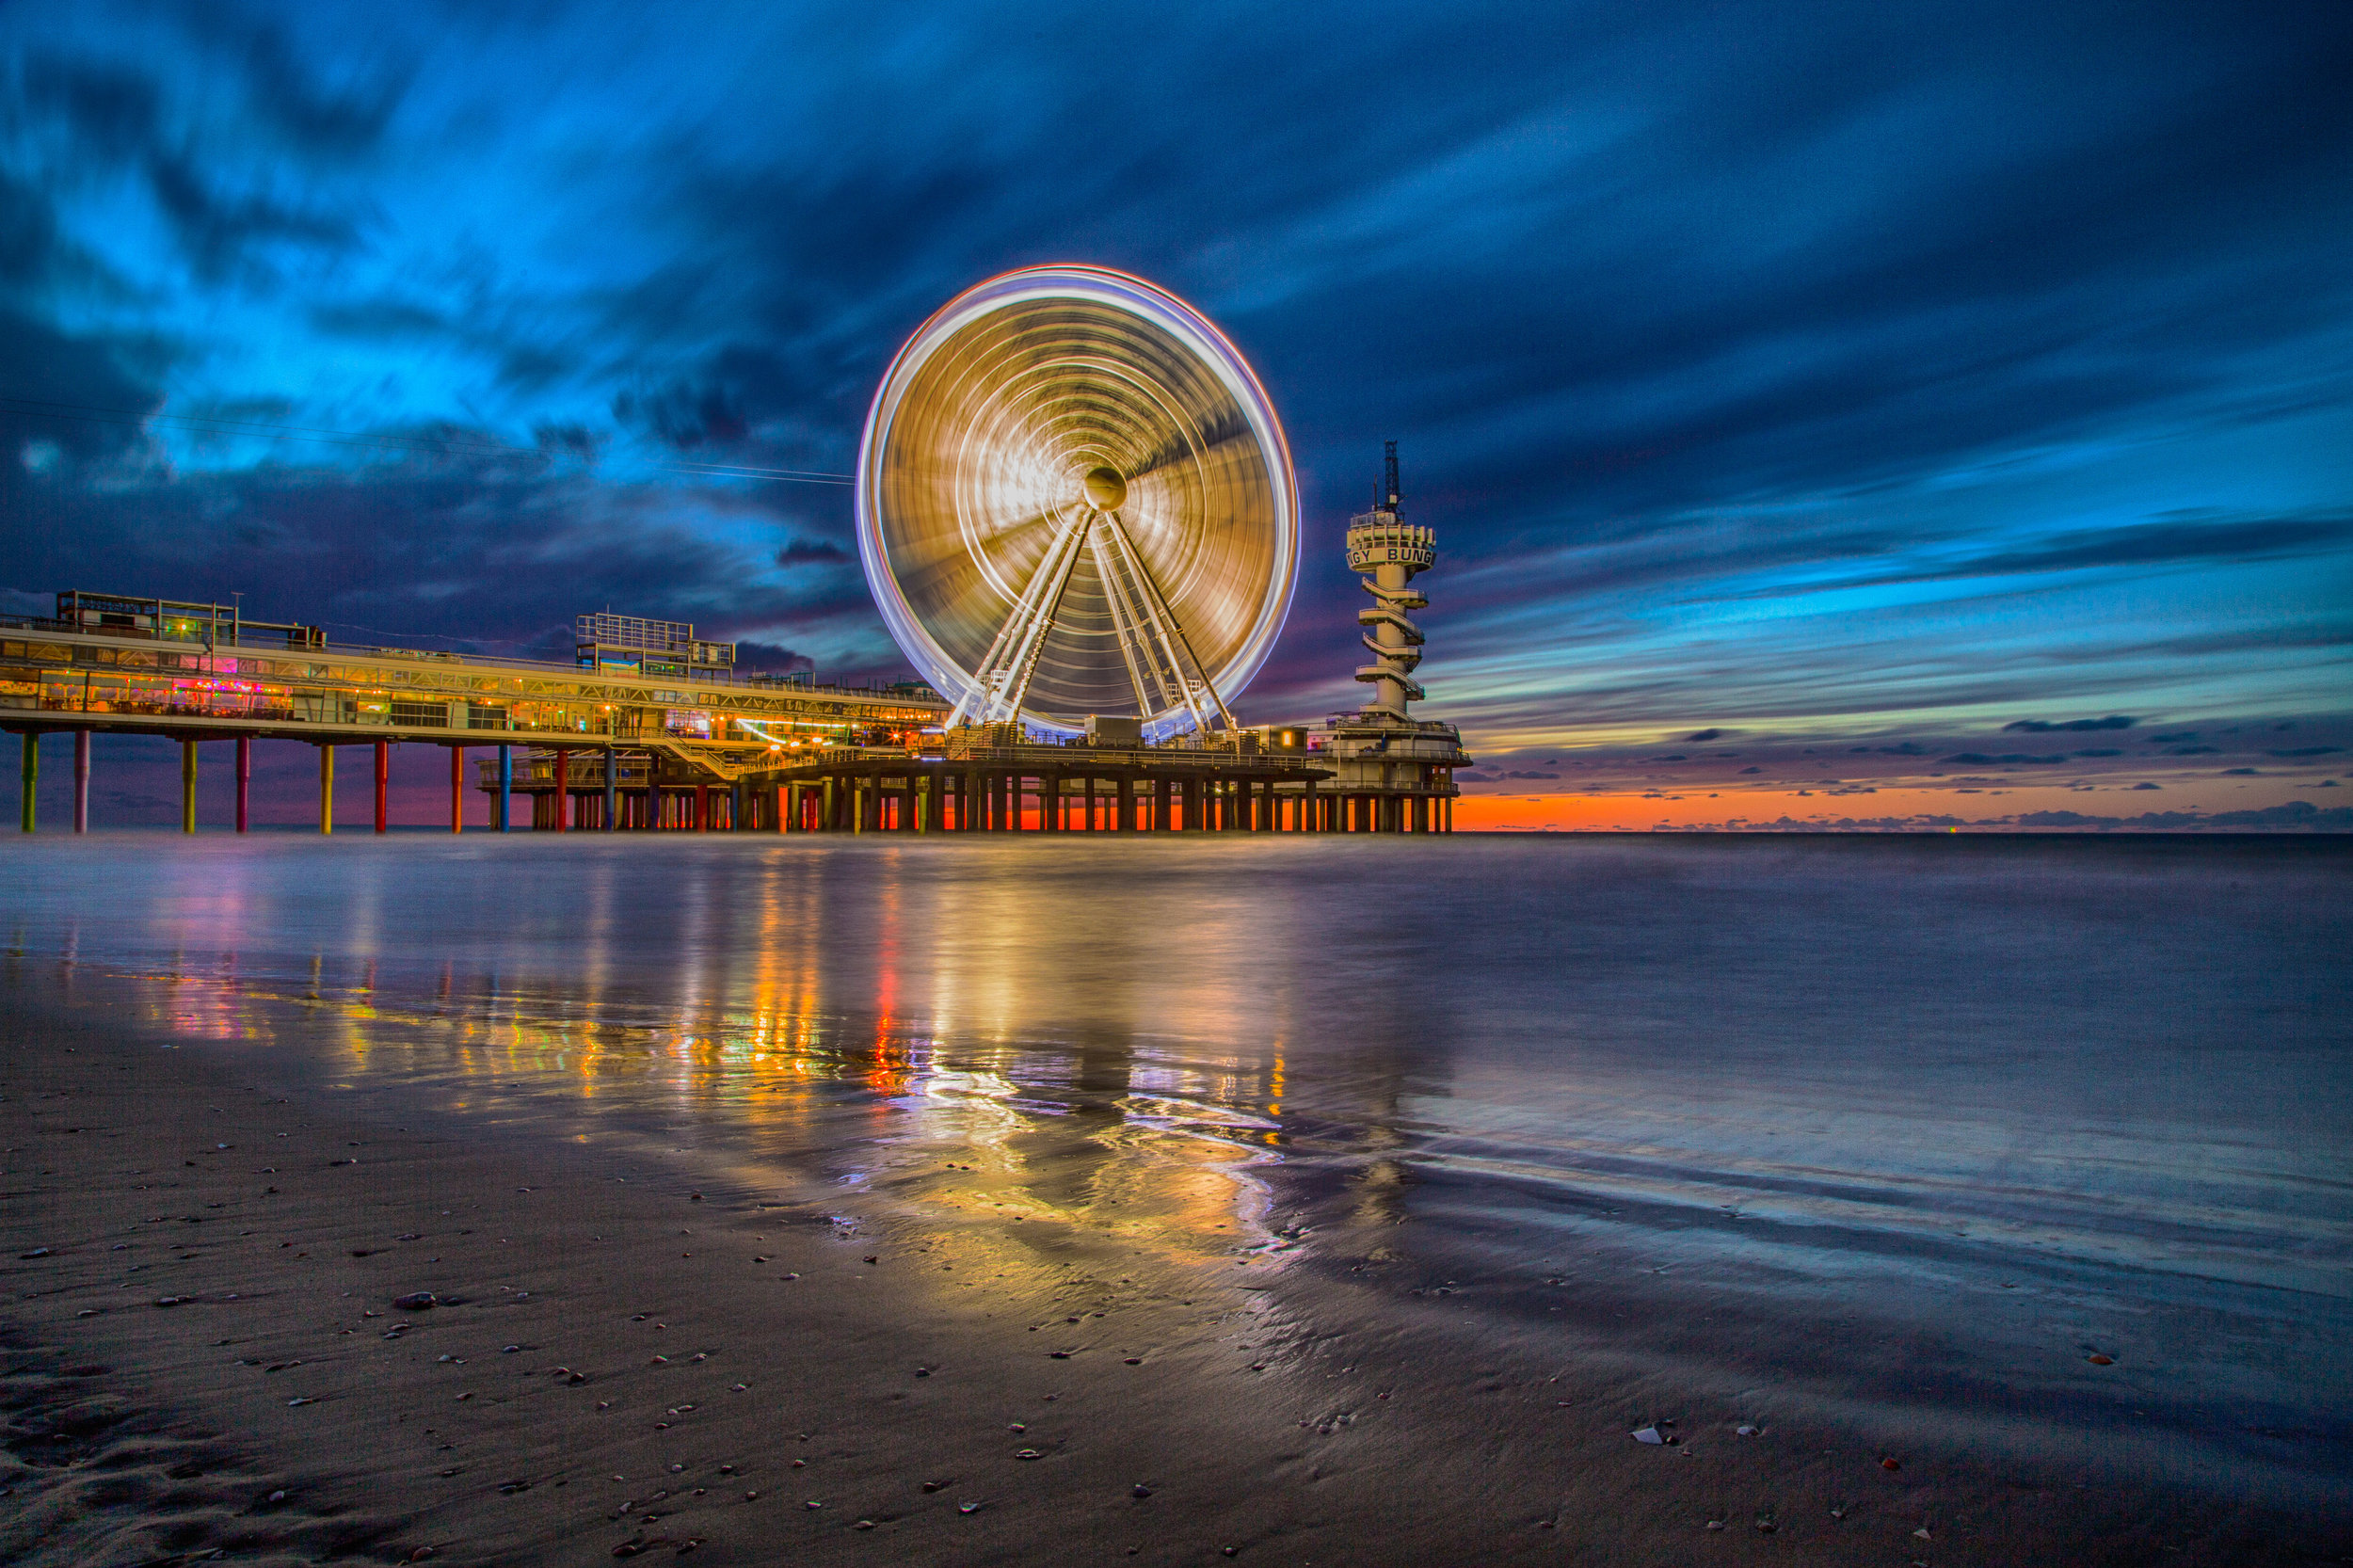 Light Trails at the Pier